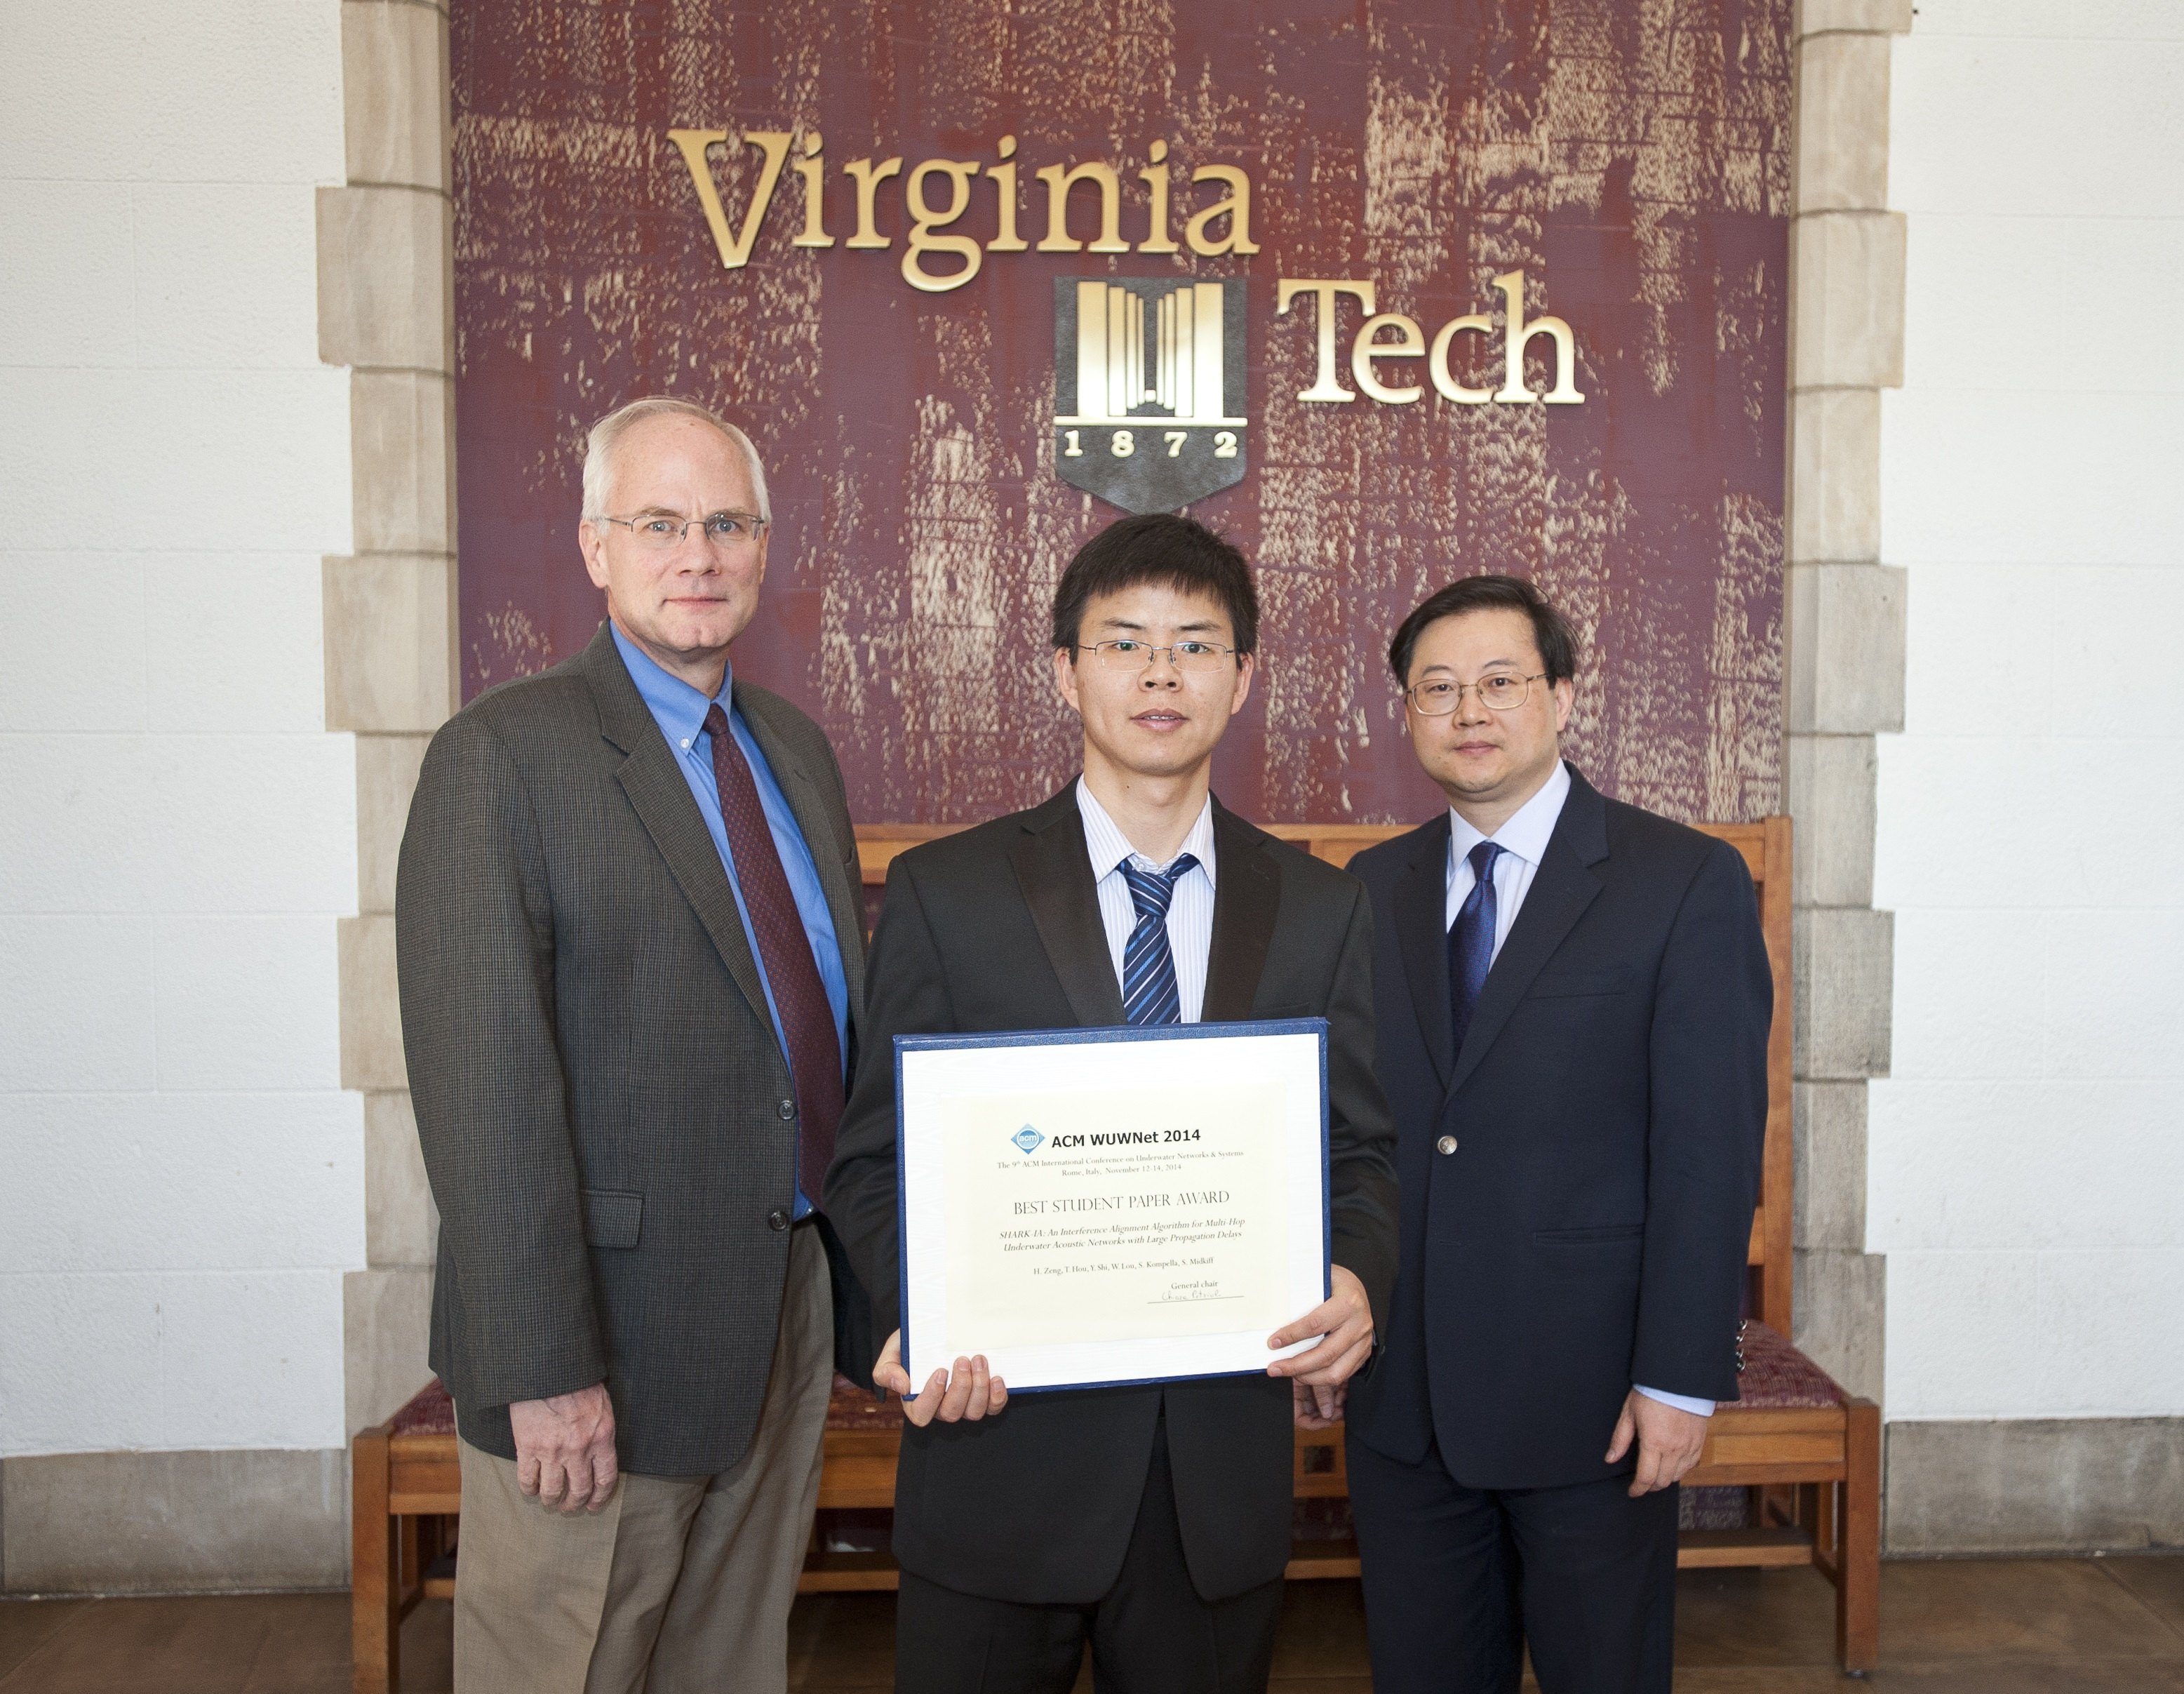 Virginia Tech ECE doctoral student wins award at international conference